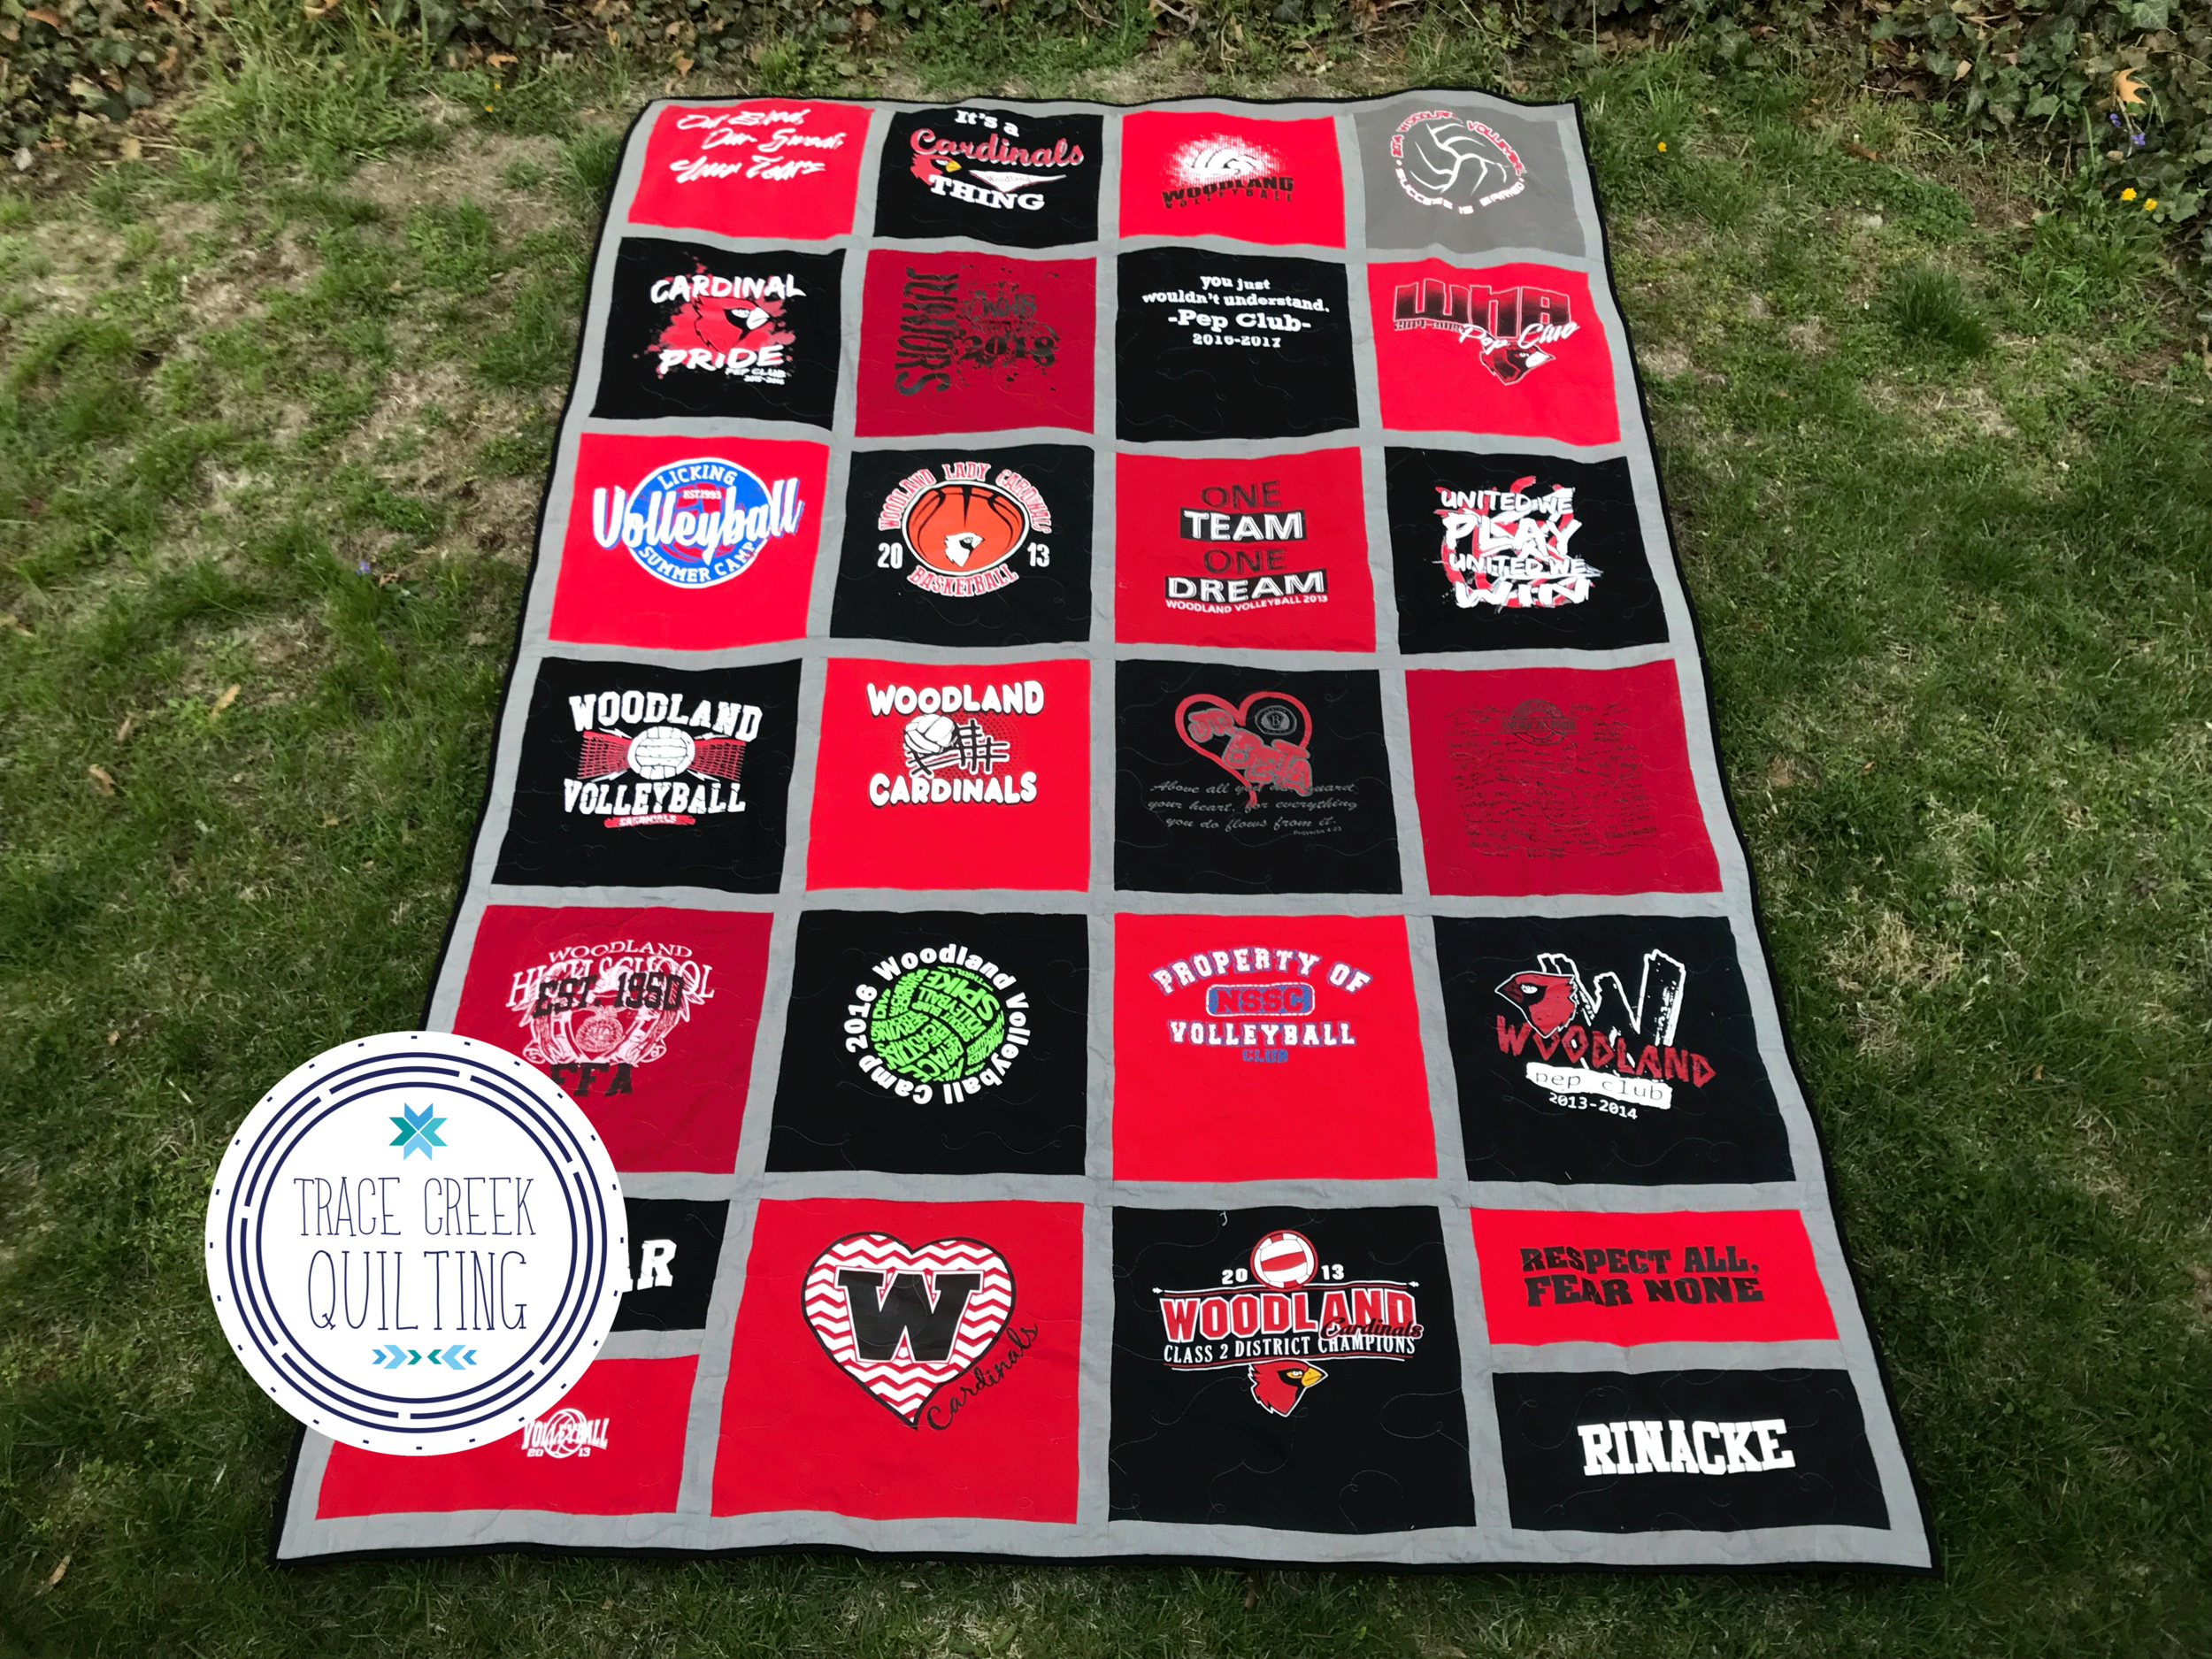 TShirt-Quilt-Trace-Creek-Quilting-1.png